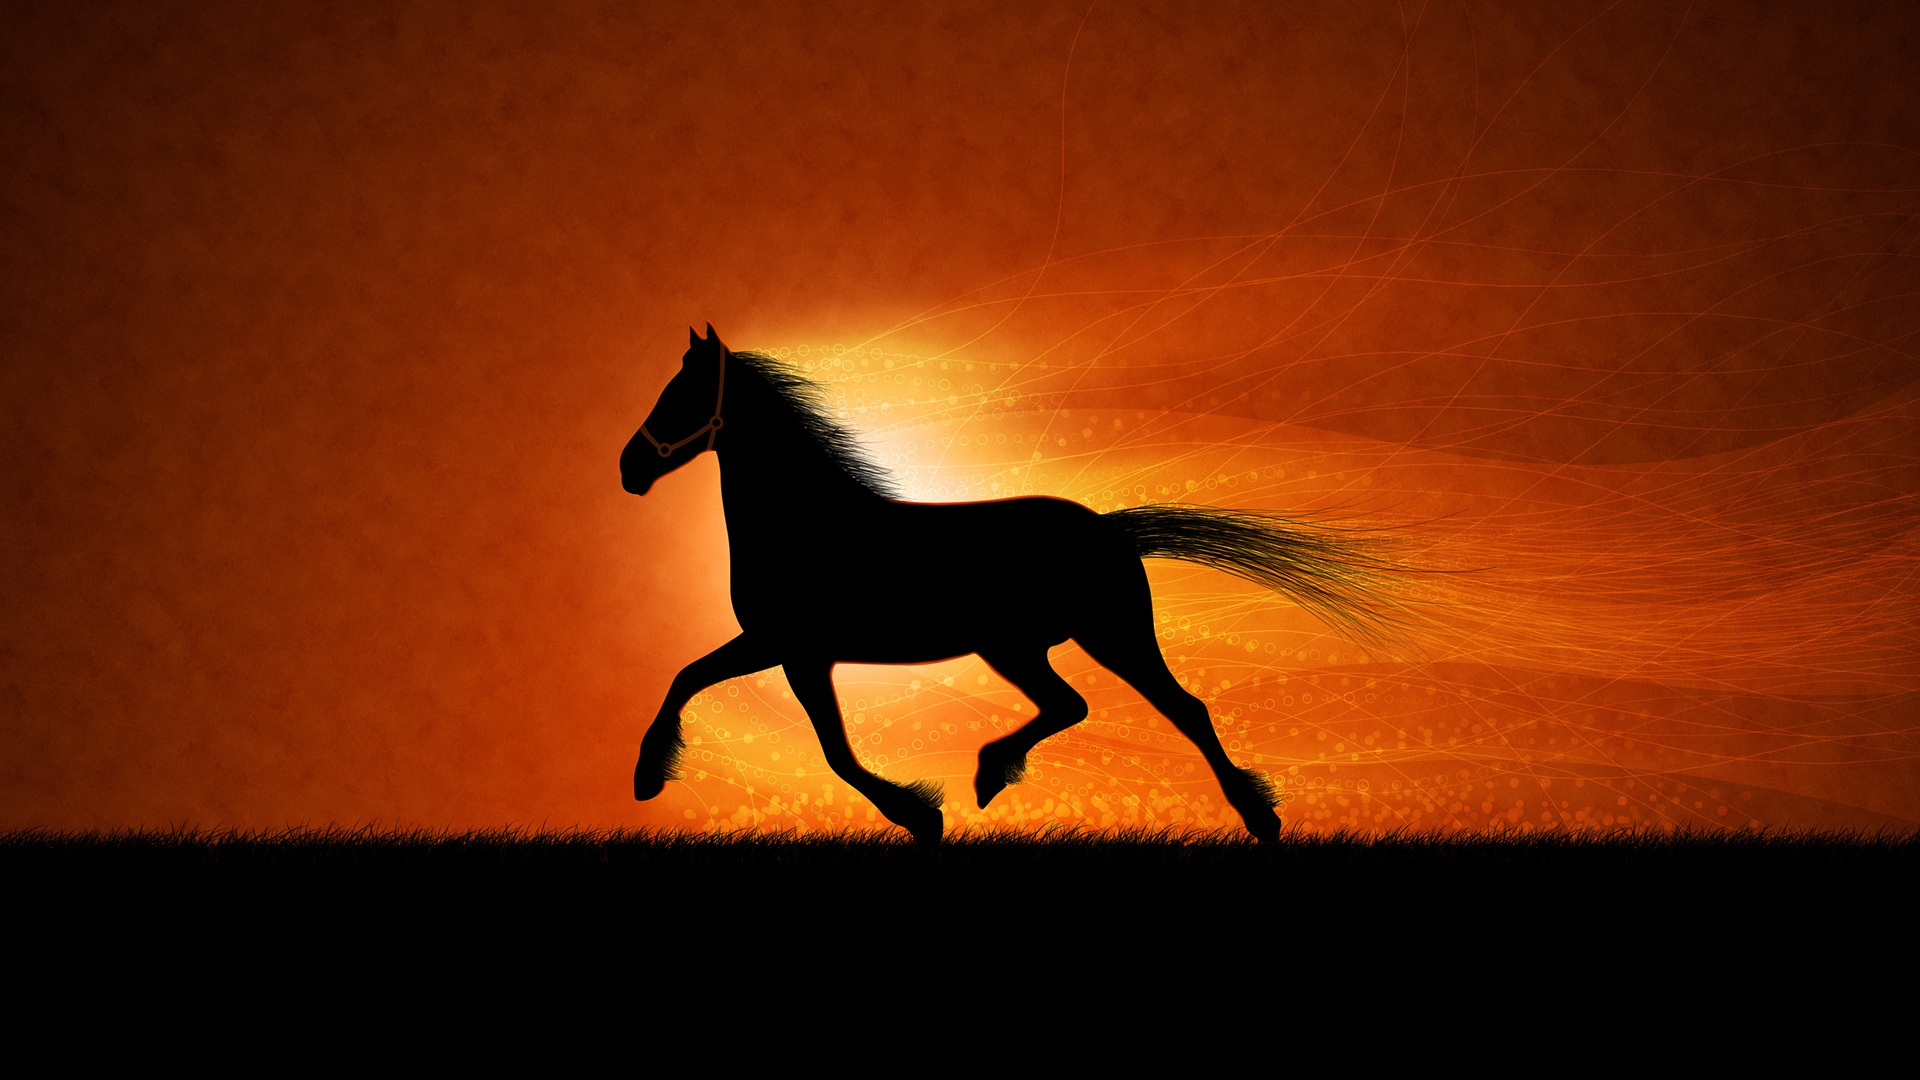 running horse wallpapers in jpg format for free download